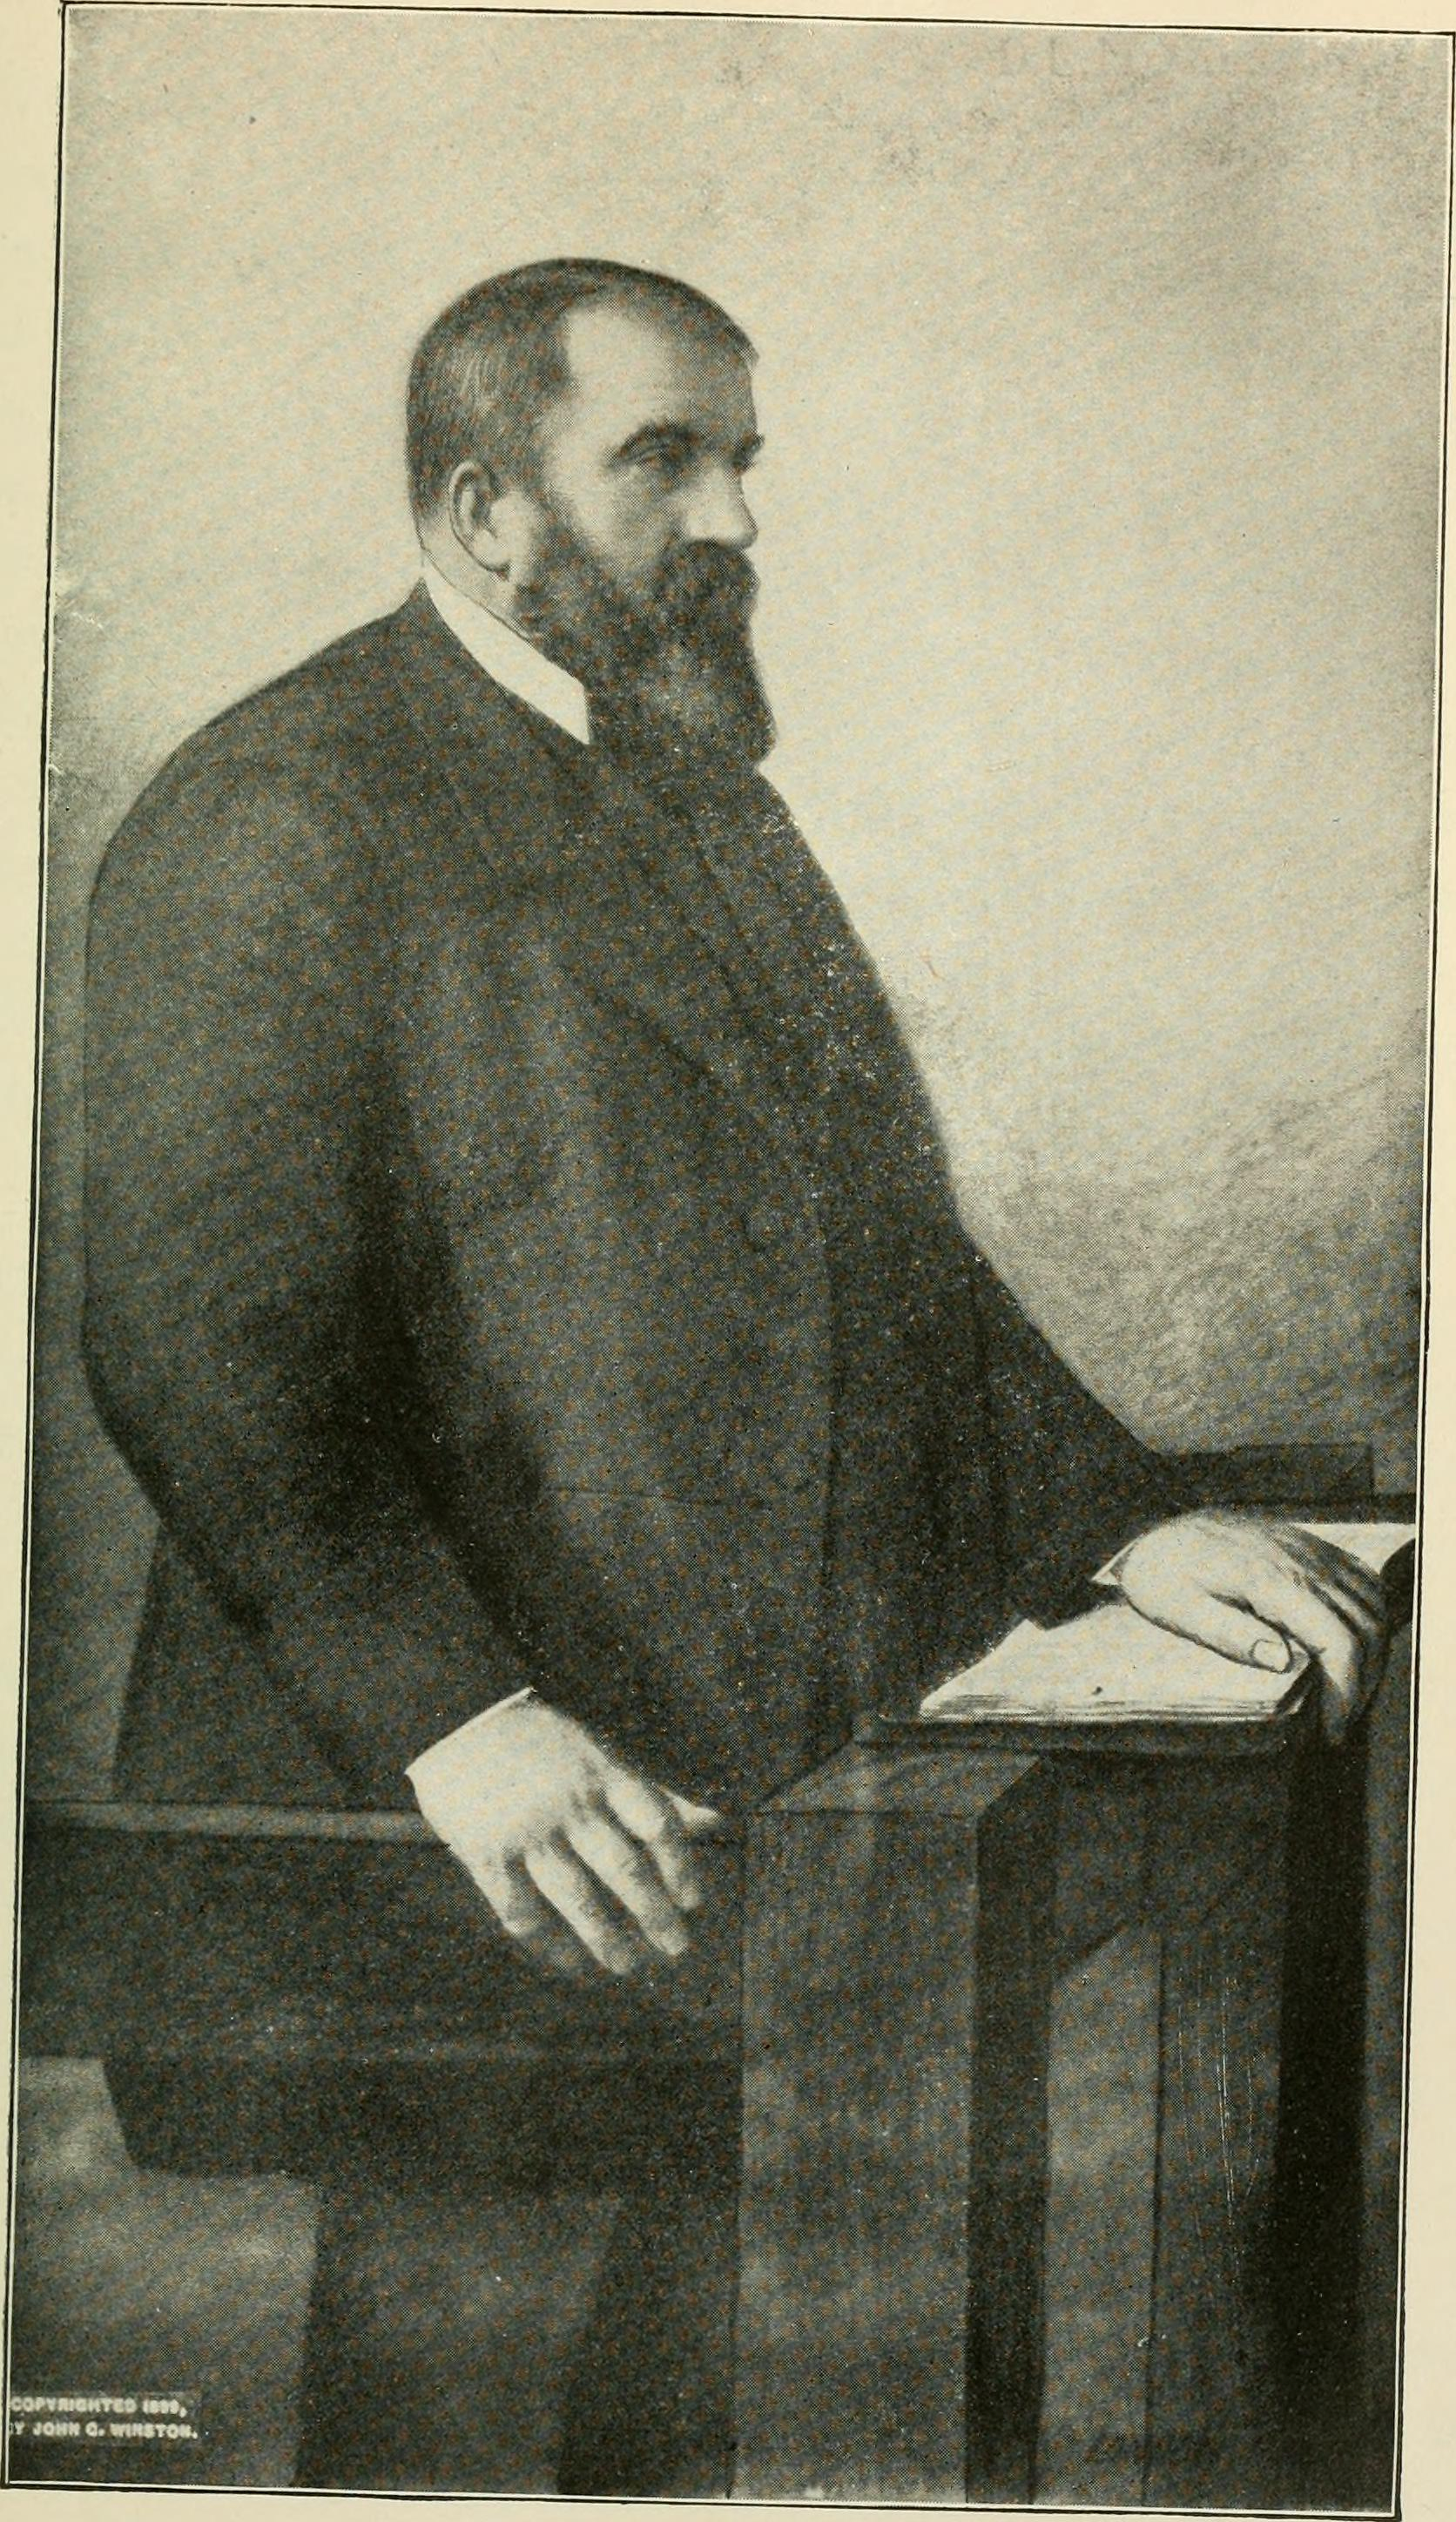 Books by Dwight L. Moody